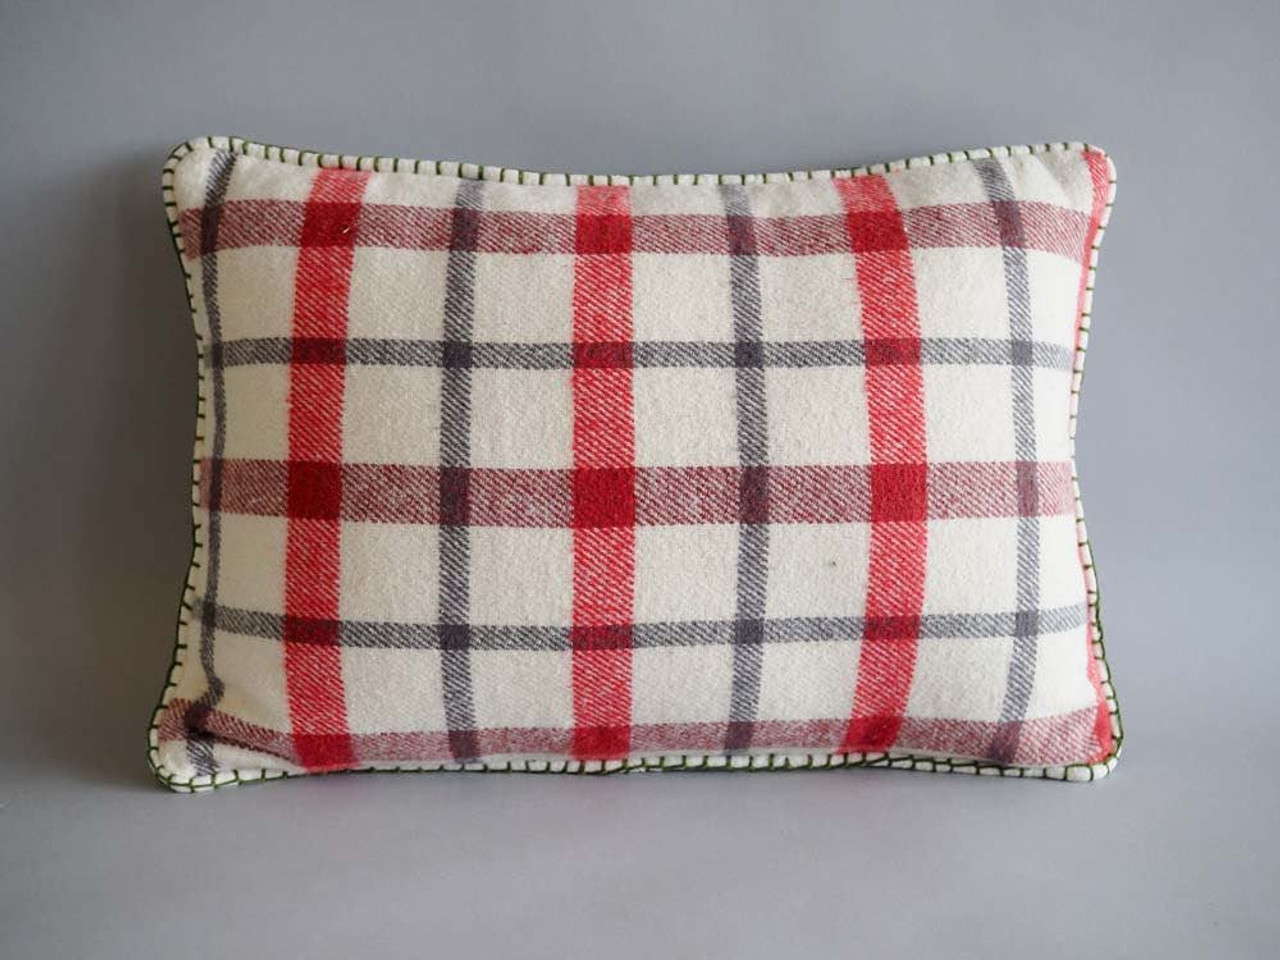 Plaid Pillow with Blanket Stitch